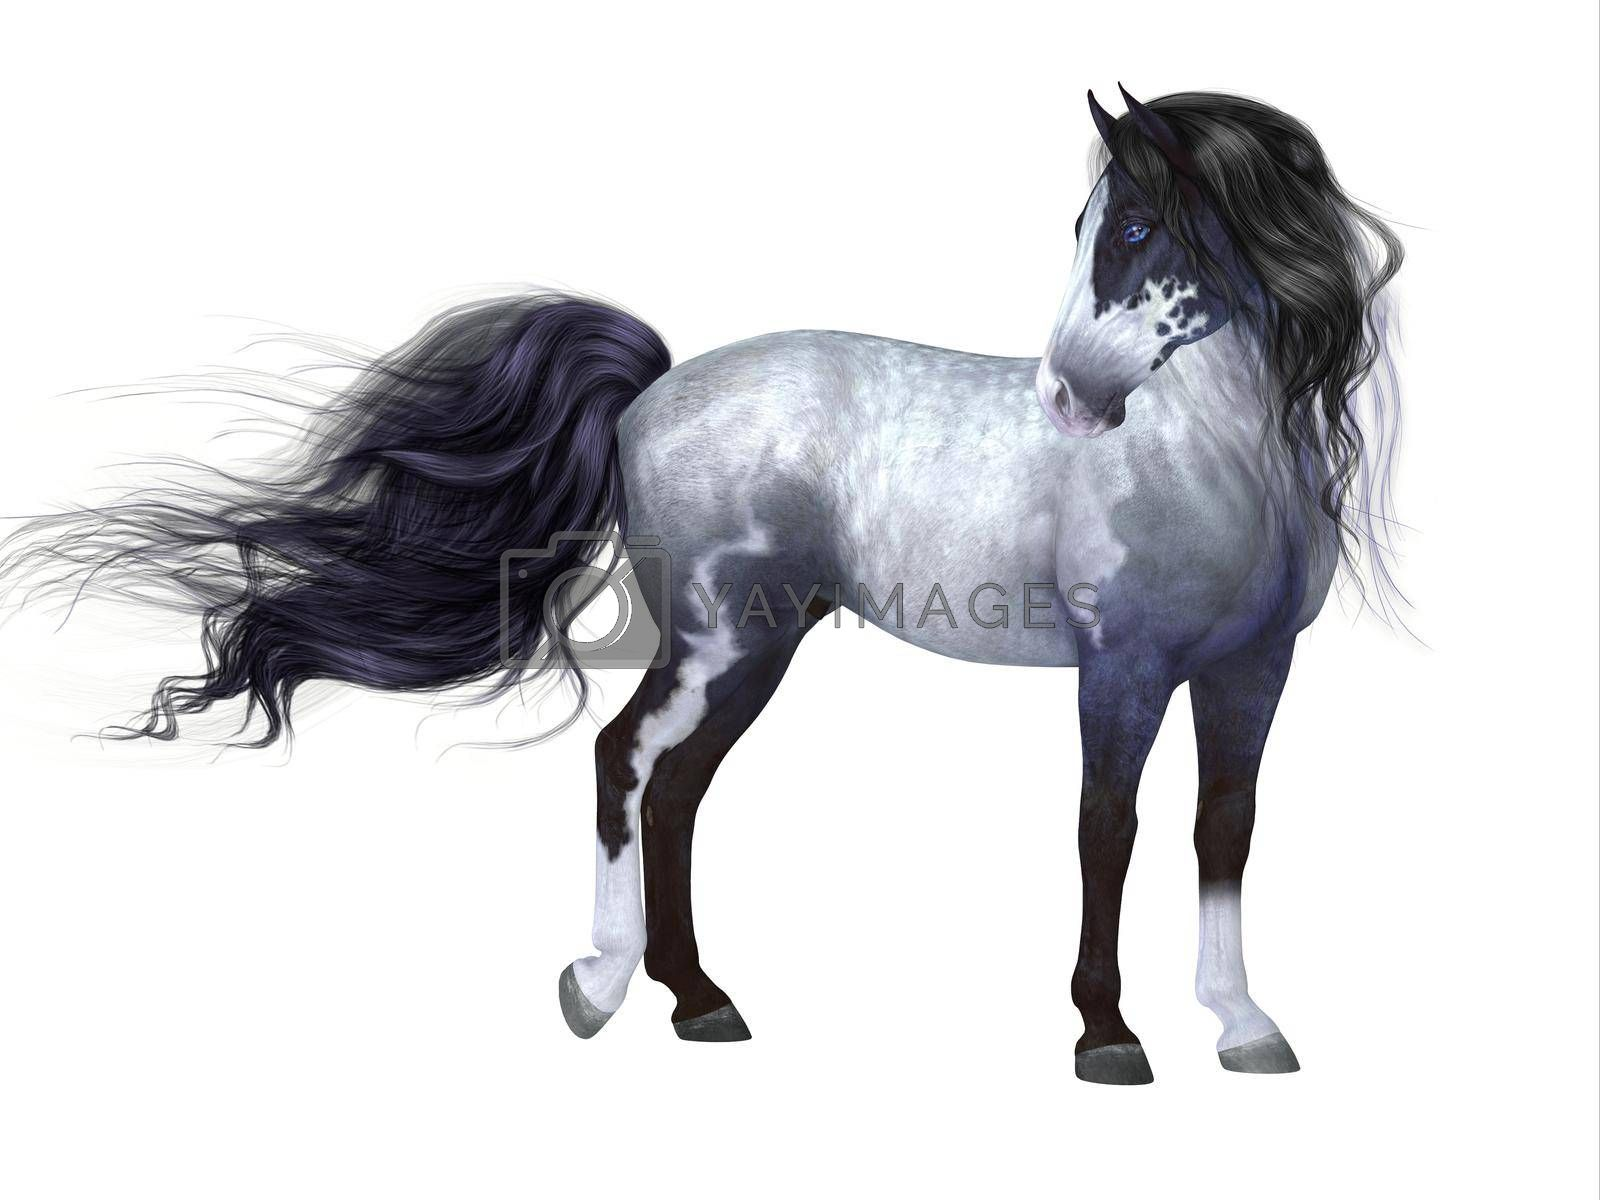 The Blue Roan is a coat color of many different breeds of horses and is distinguished by a base black color.